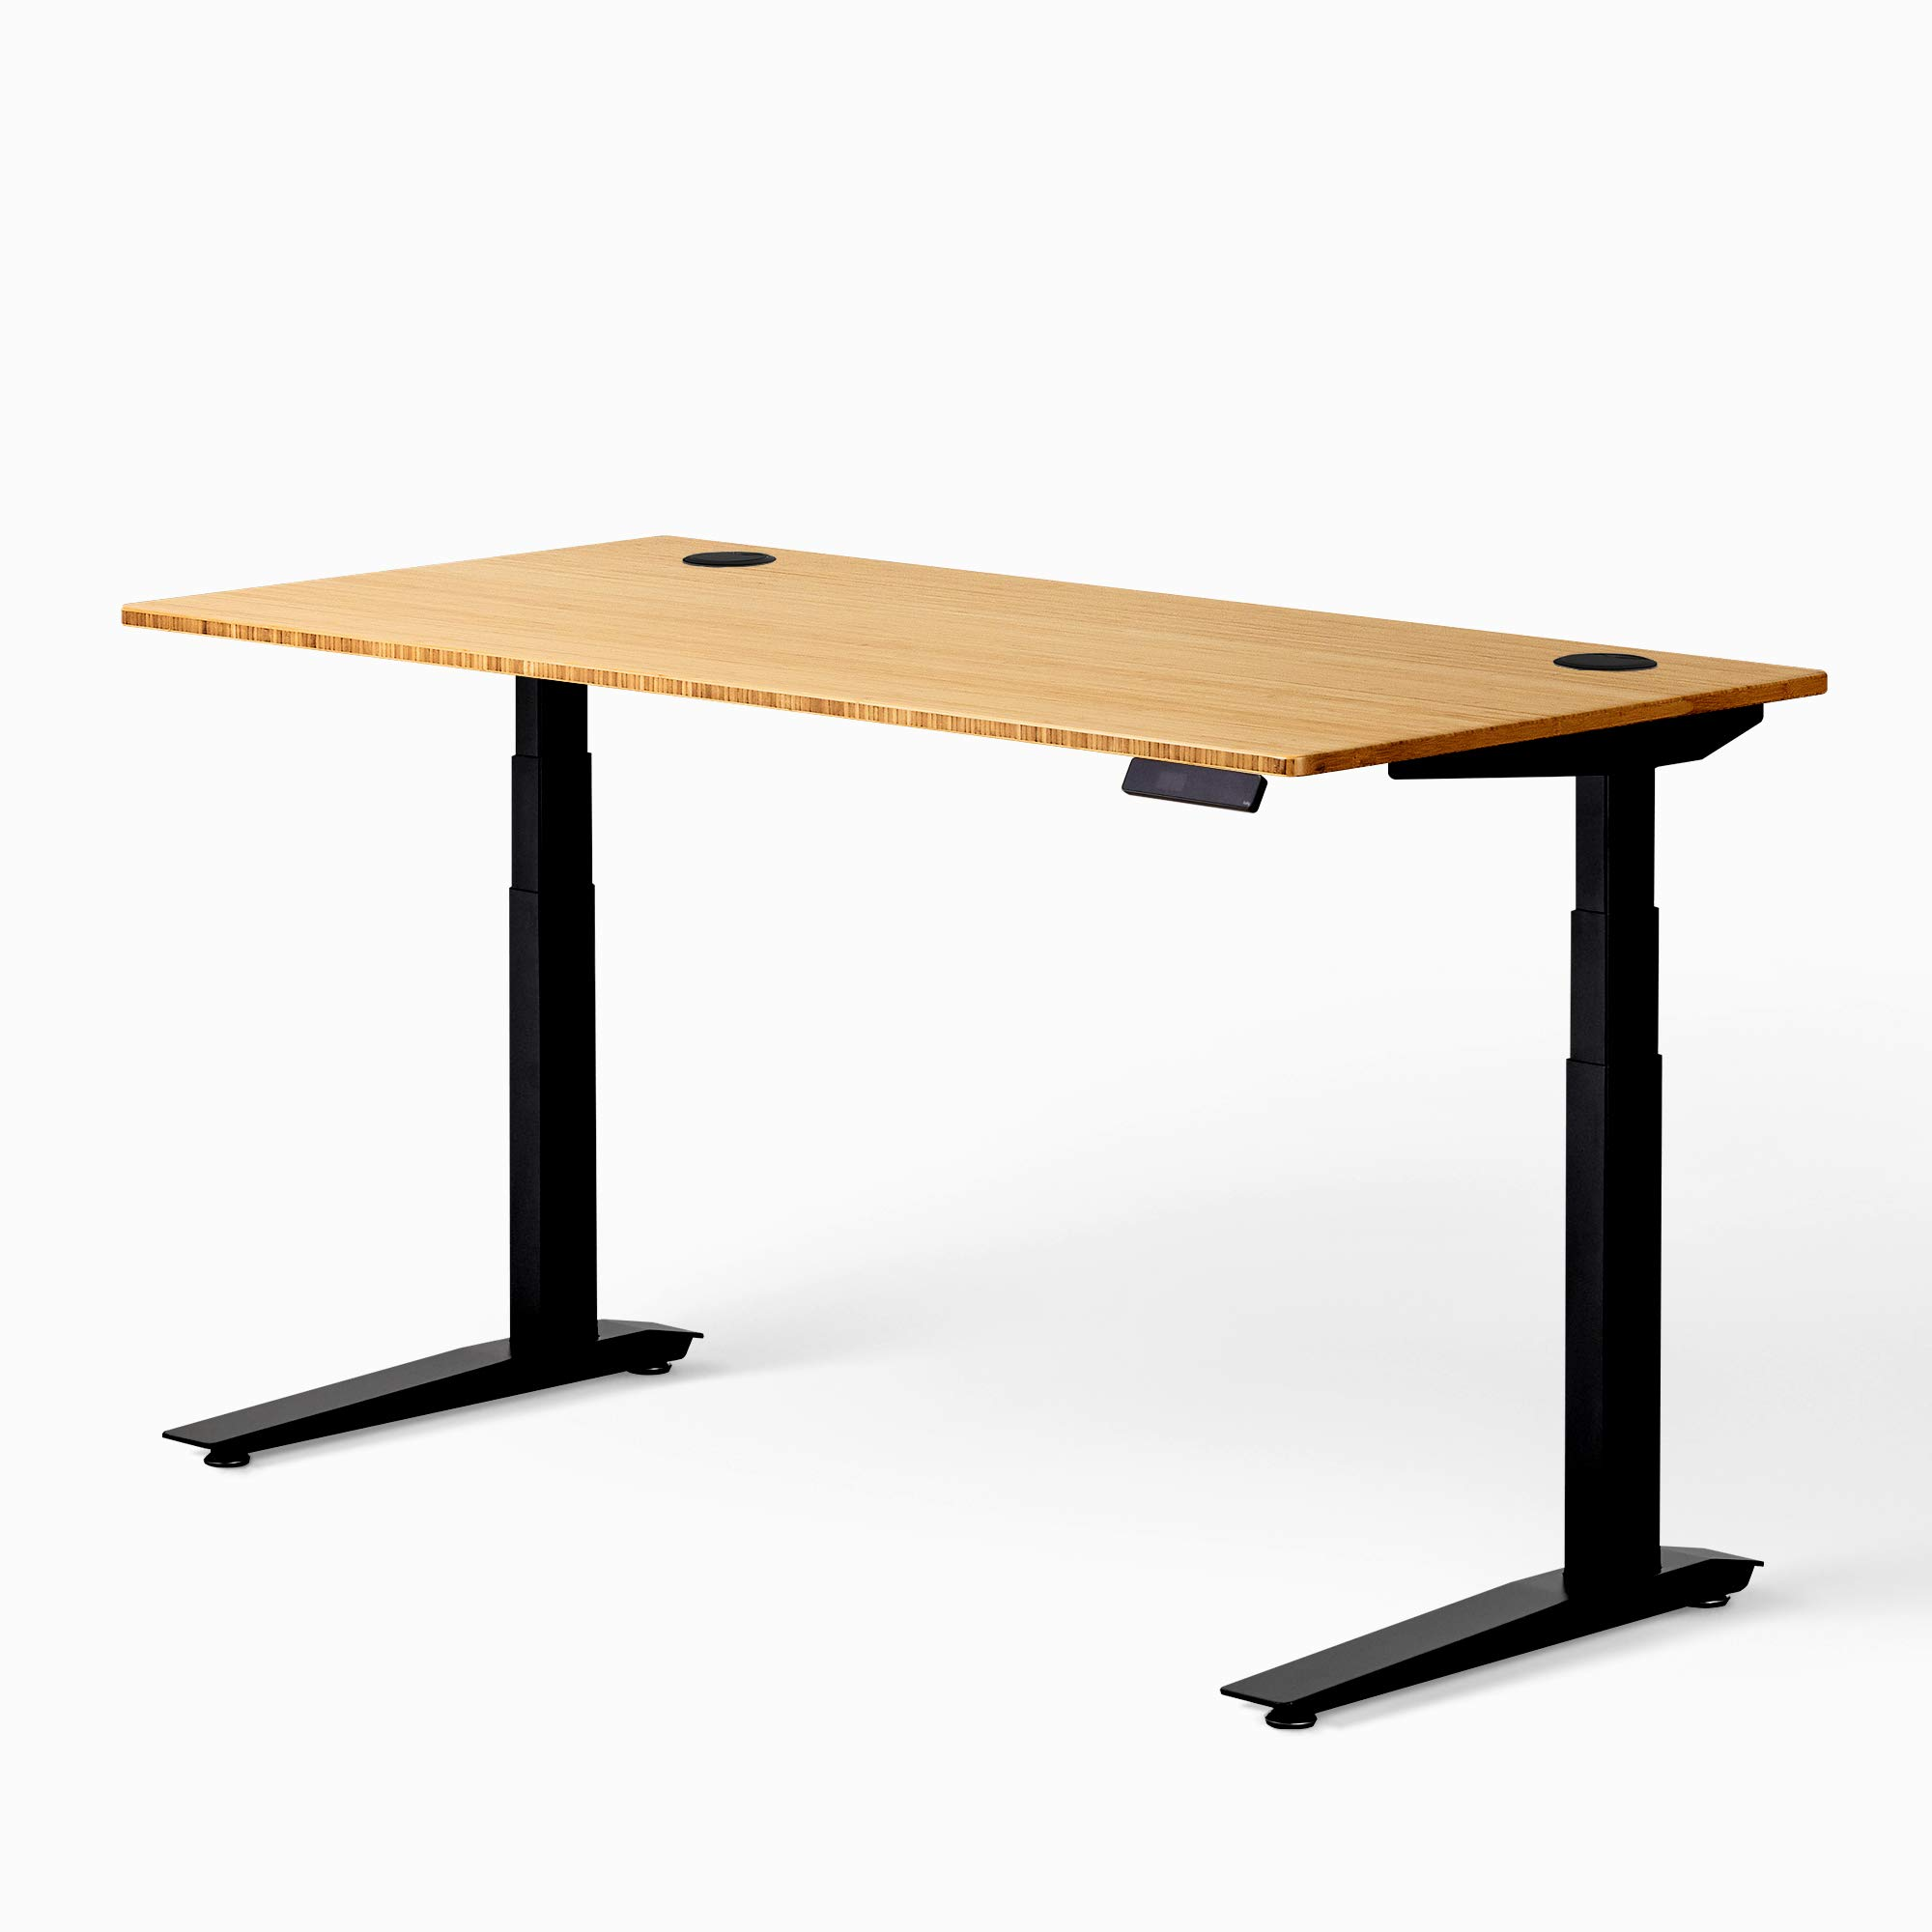 "Fully Jarvis Standing Desk 60"" x 30"" Bamboo Top - Electric Adjustable Desk Height from 25.5"" to 51"" with Memory Preset Controller (Rectangle, Black Frame)"